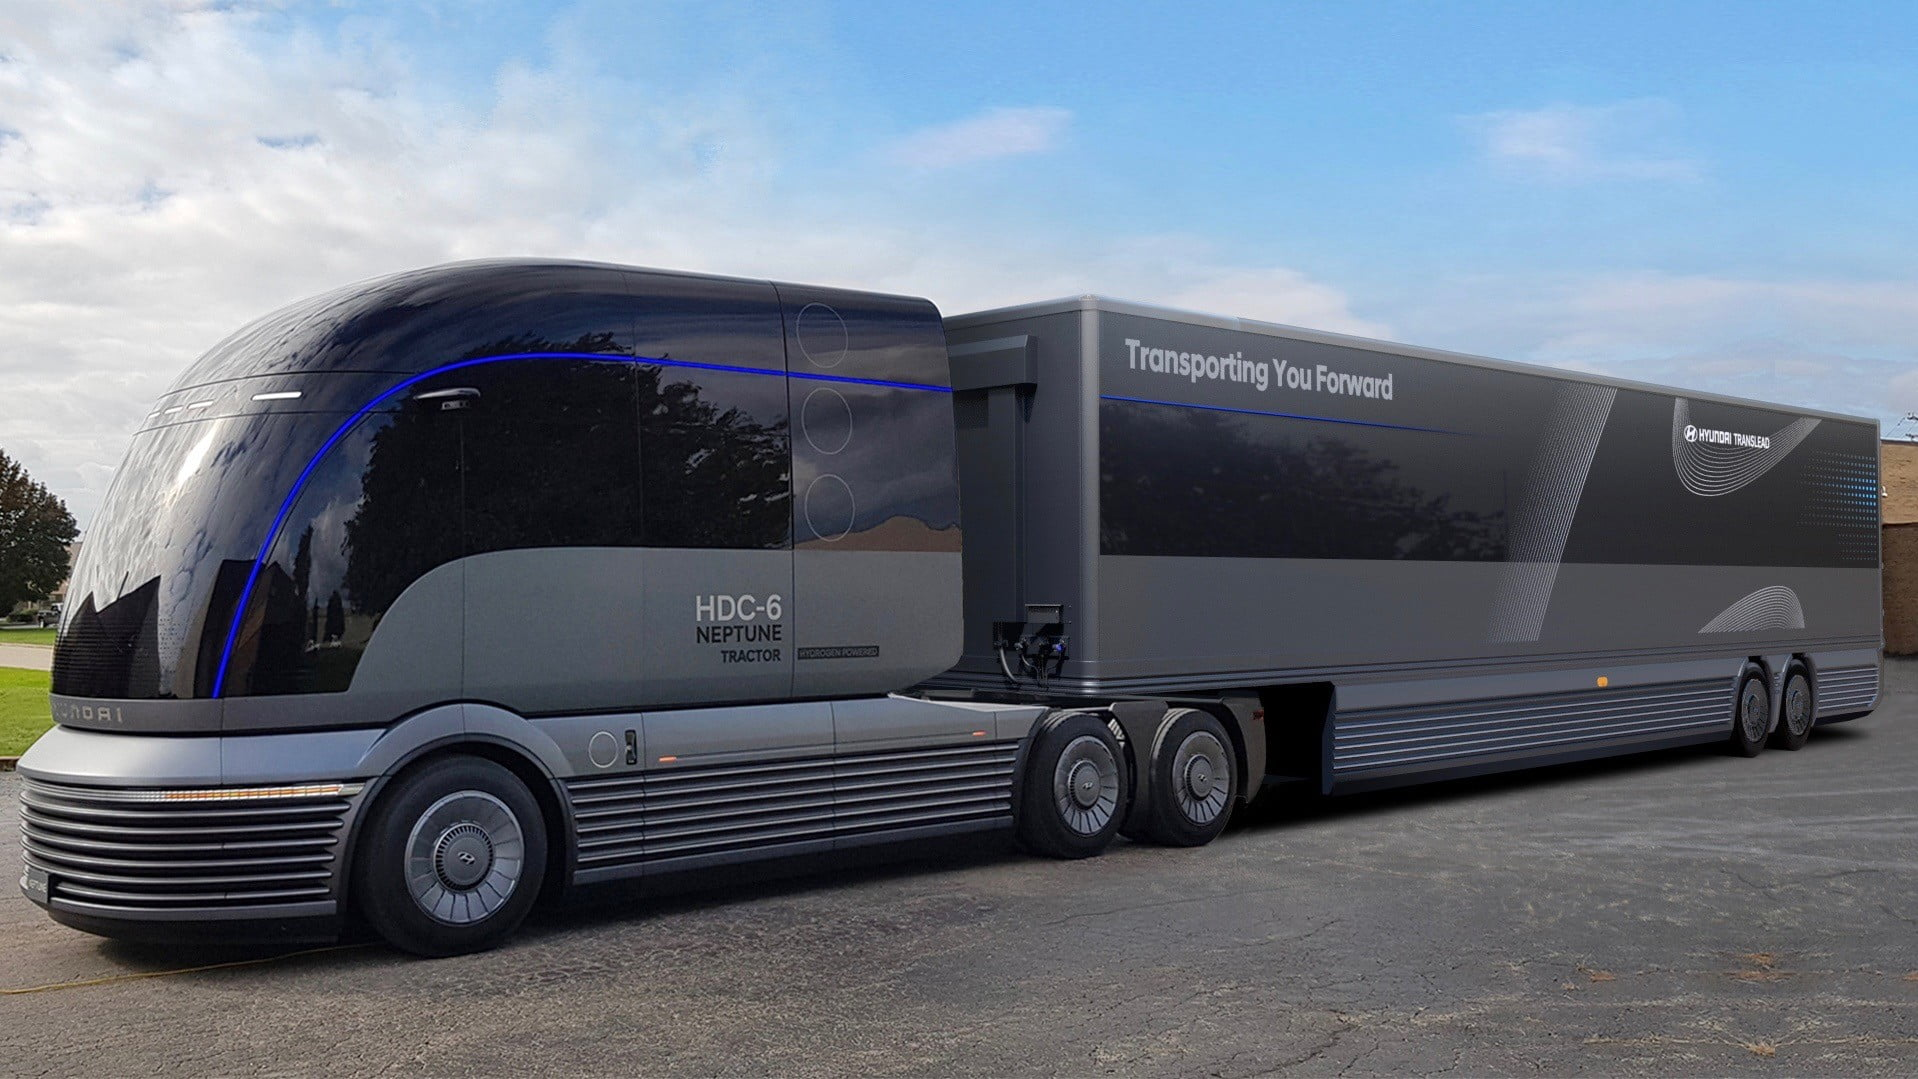 hyundai hdc 6 neptune concept hydrogen fuel cell truck